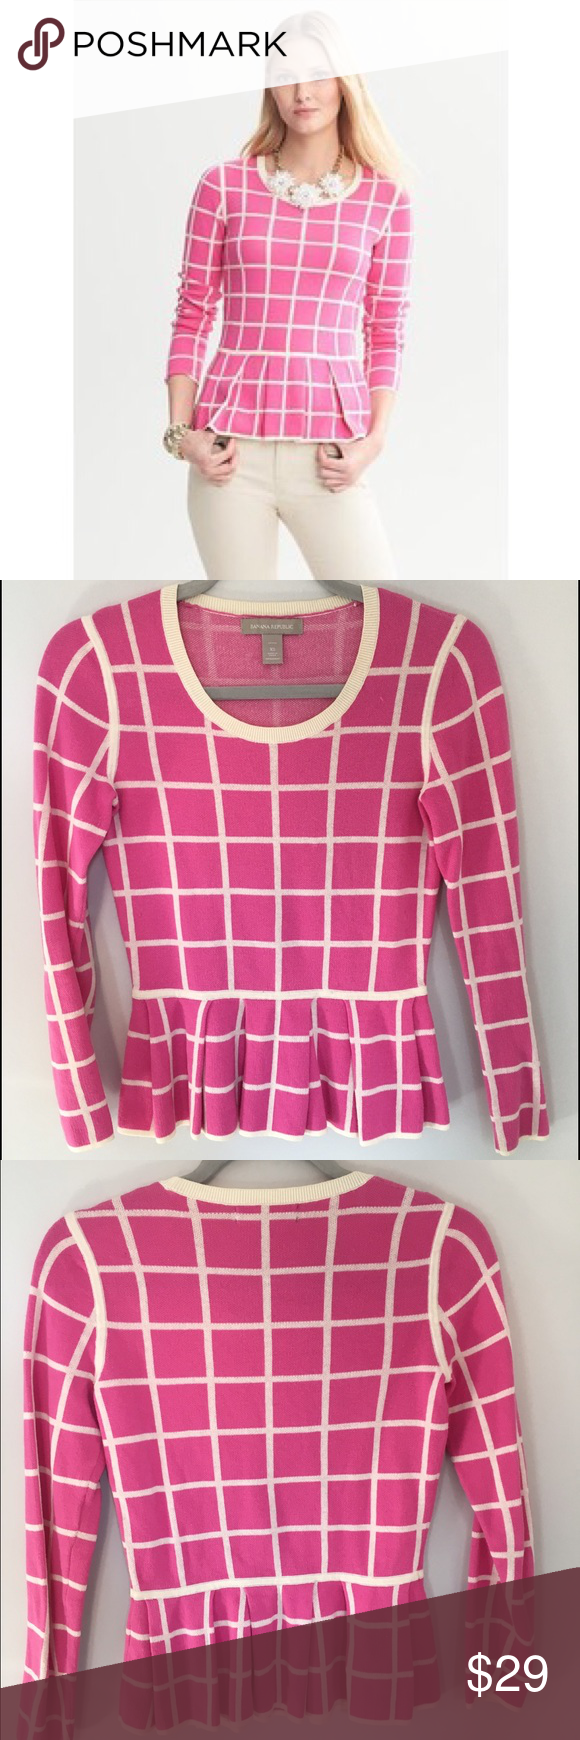 Banana Republic Windowpane Sweater Pink windowpane patterned peplum sweater from Banana Republic. Love this sweater! Looks so cute dressed up or down, bundle to save!! Banana Republic Sweaters